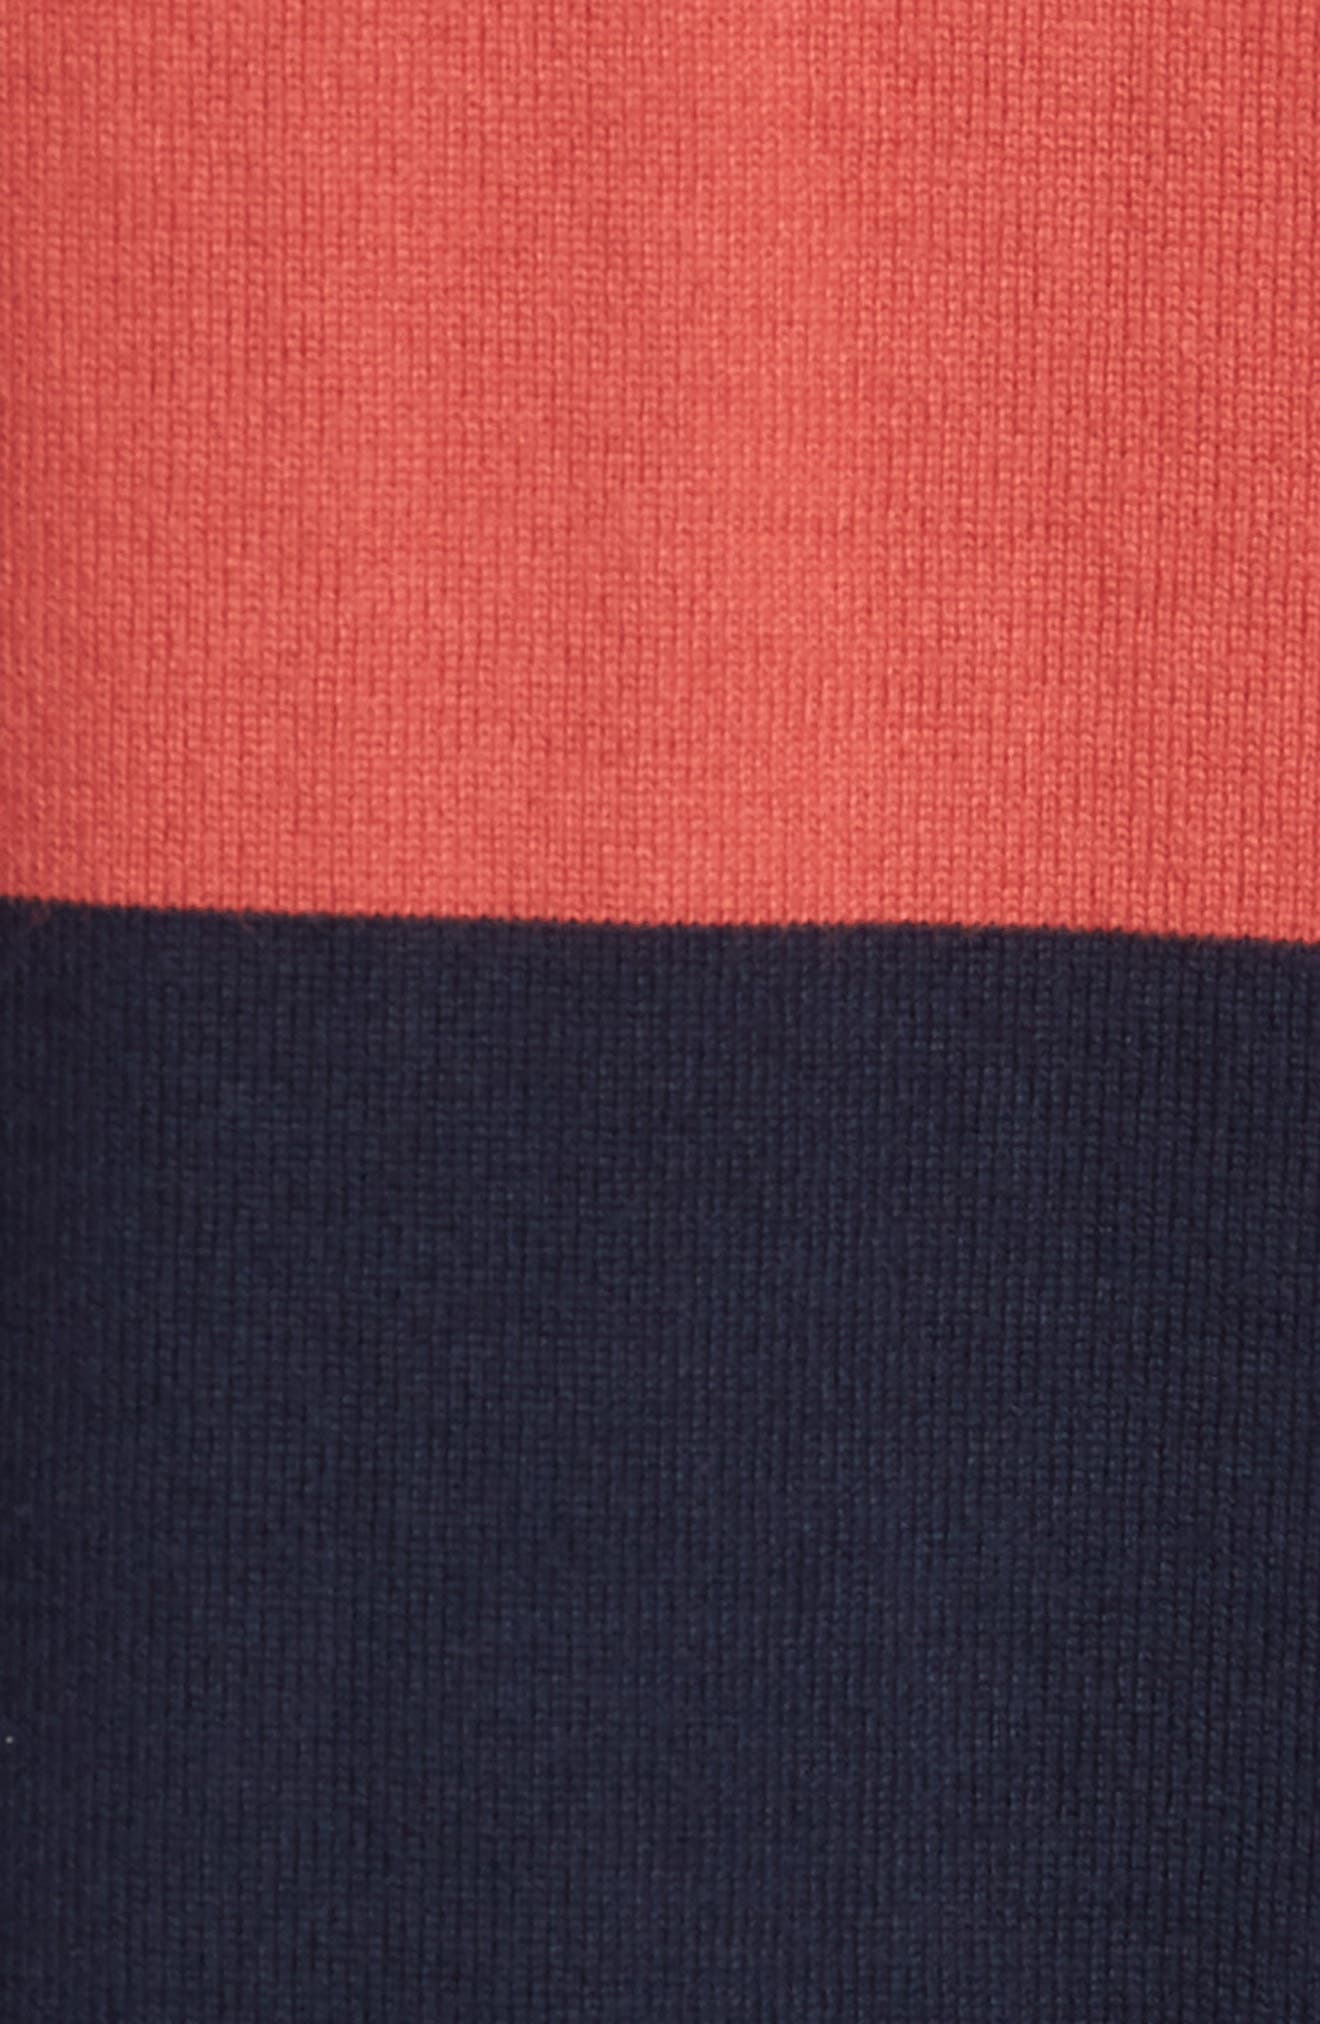 1984 Stripe Rugby Shirt,                             Alternate thumbnail 5, color,                             Old Red